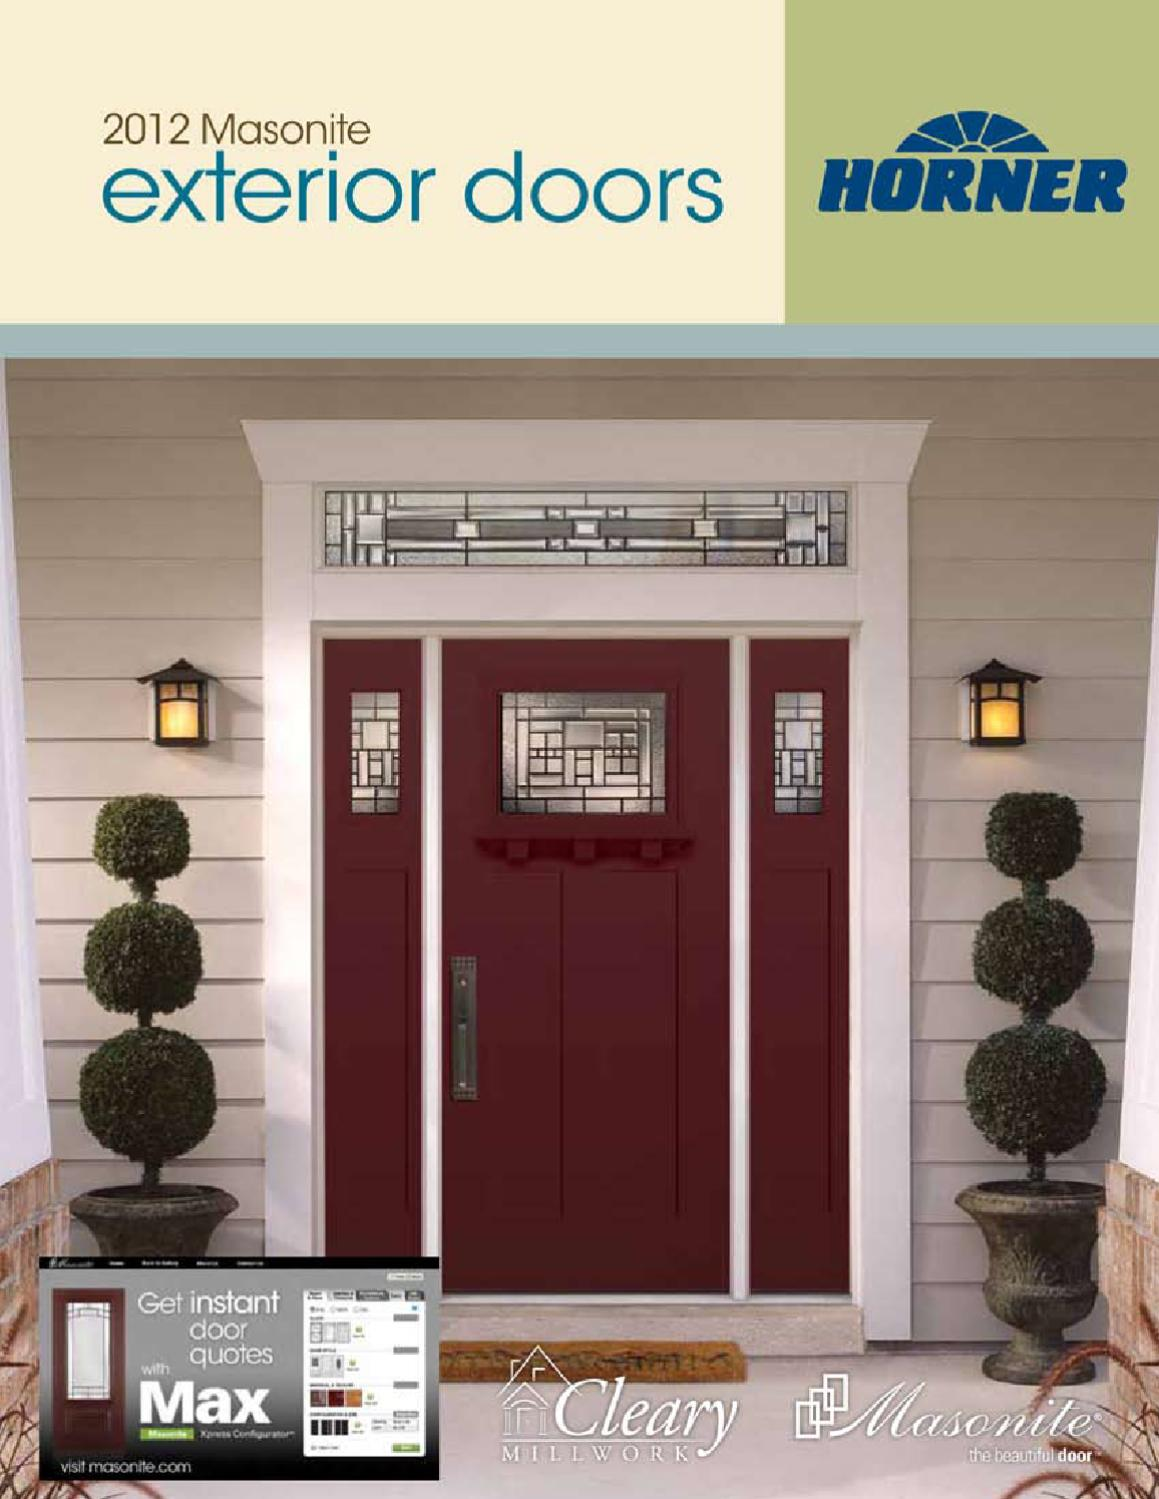 1499 #043F77 Horner Millwork Masonite Catalog By Horner Millwork Issuu wallpaper Masonite Fiberglass Exterior Doors 43651159